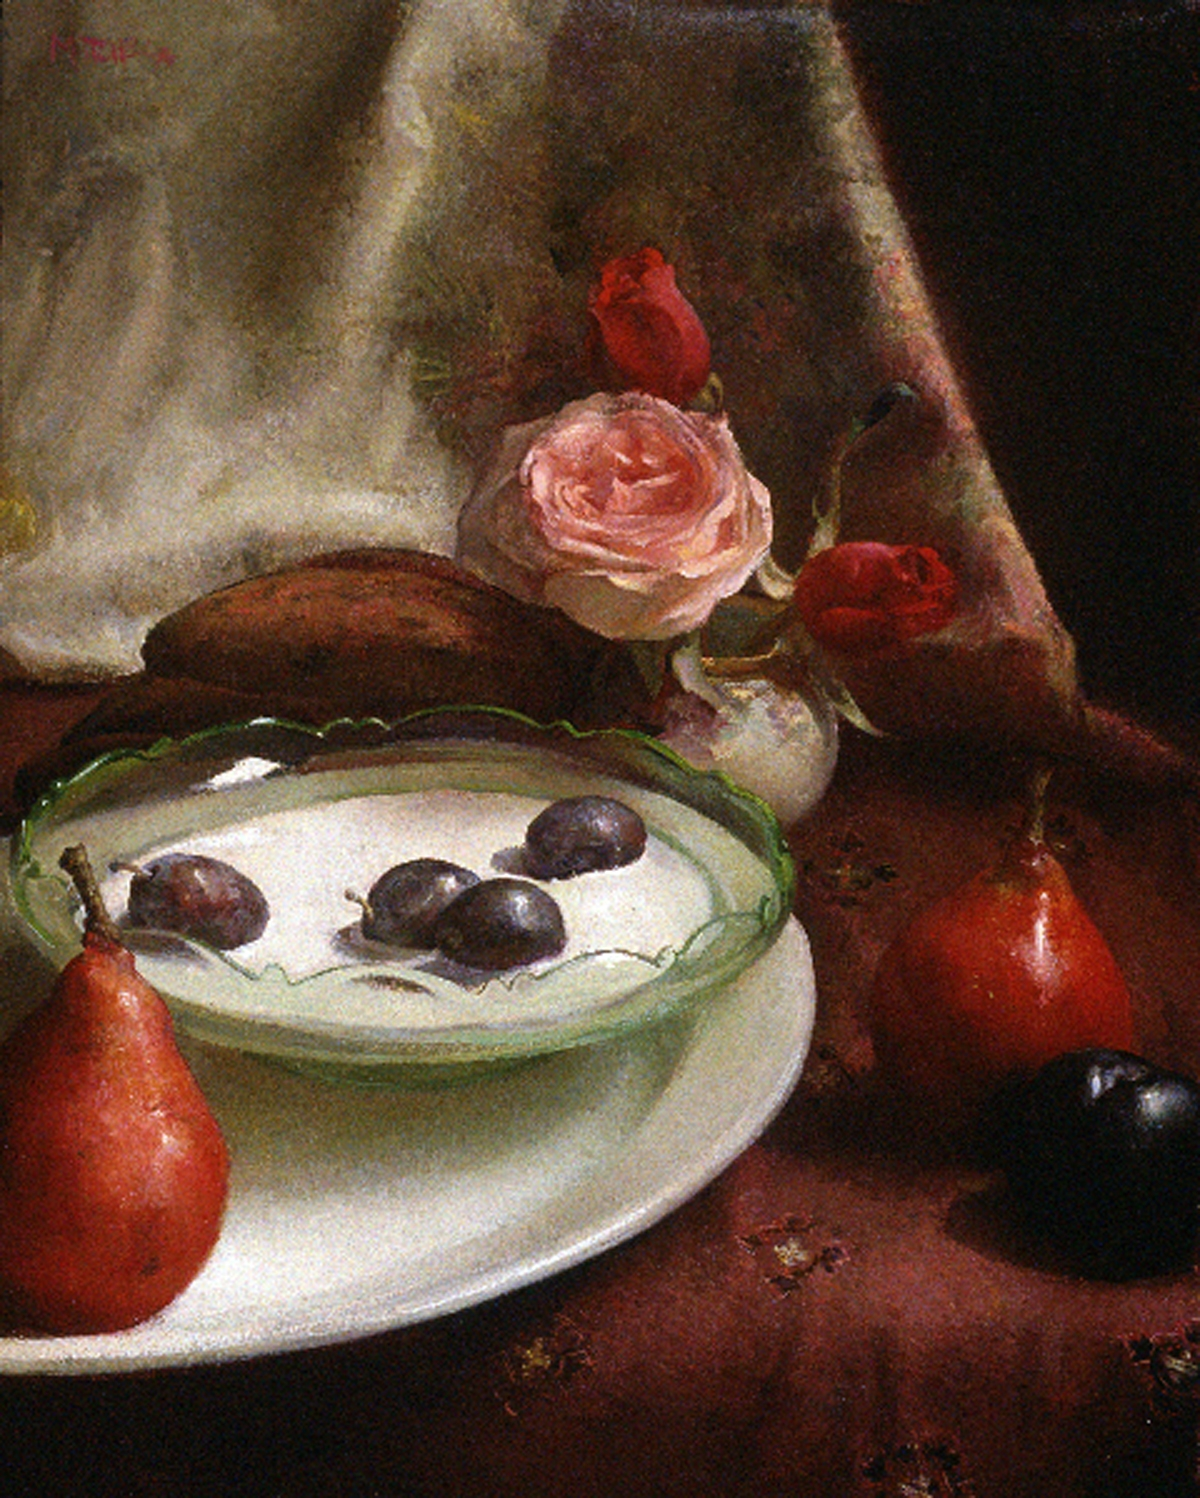 Plum 'n Cream-Mitchell.jpg